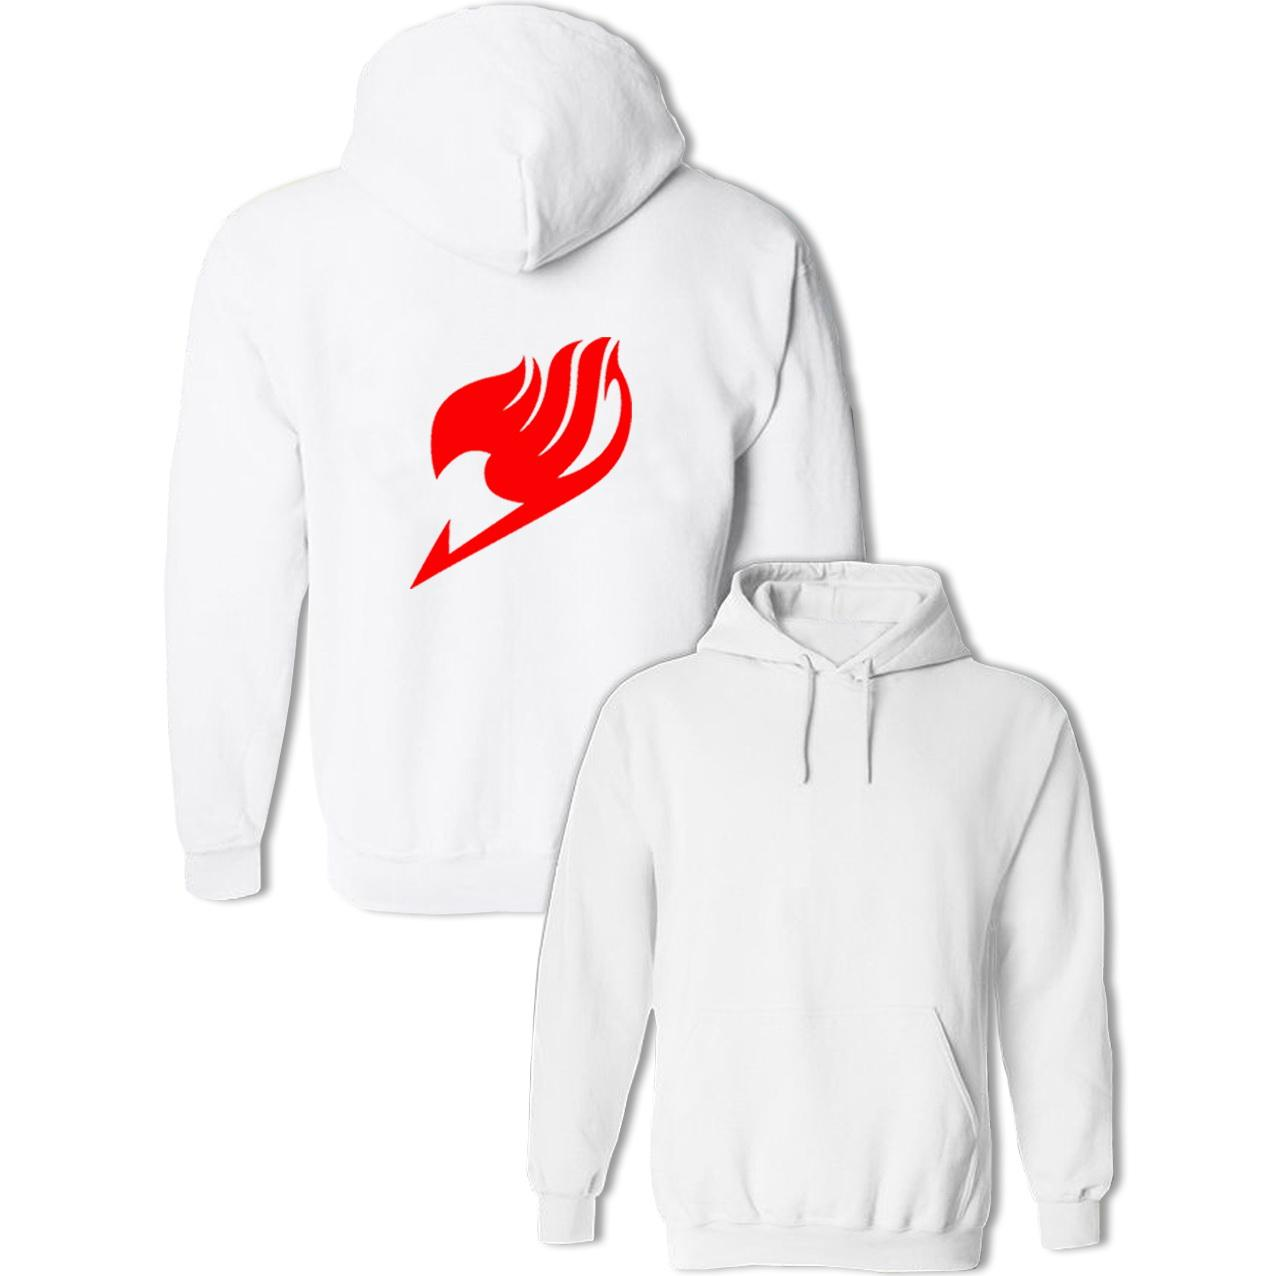 2018 Fairy Tail Guild Symbol Hoodies Mens Womens Girls Boys